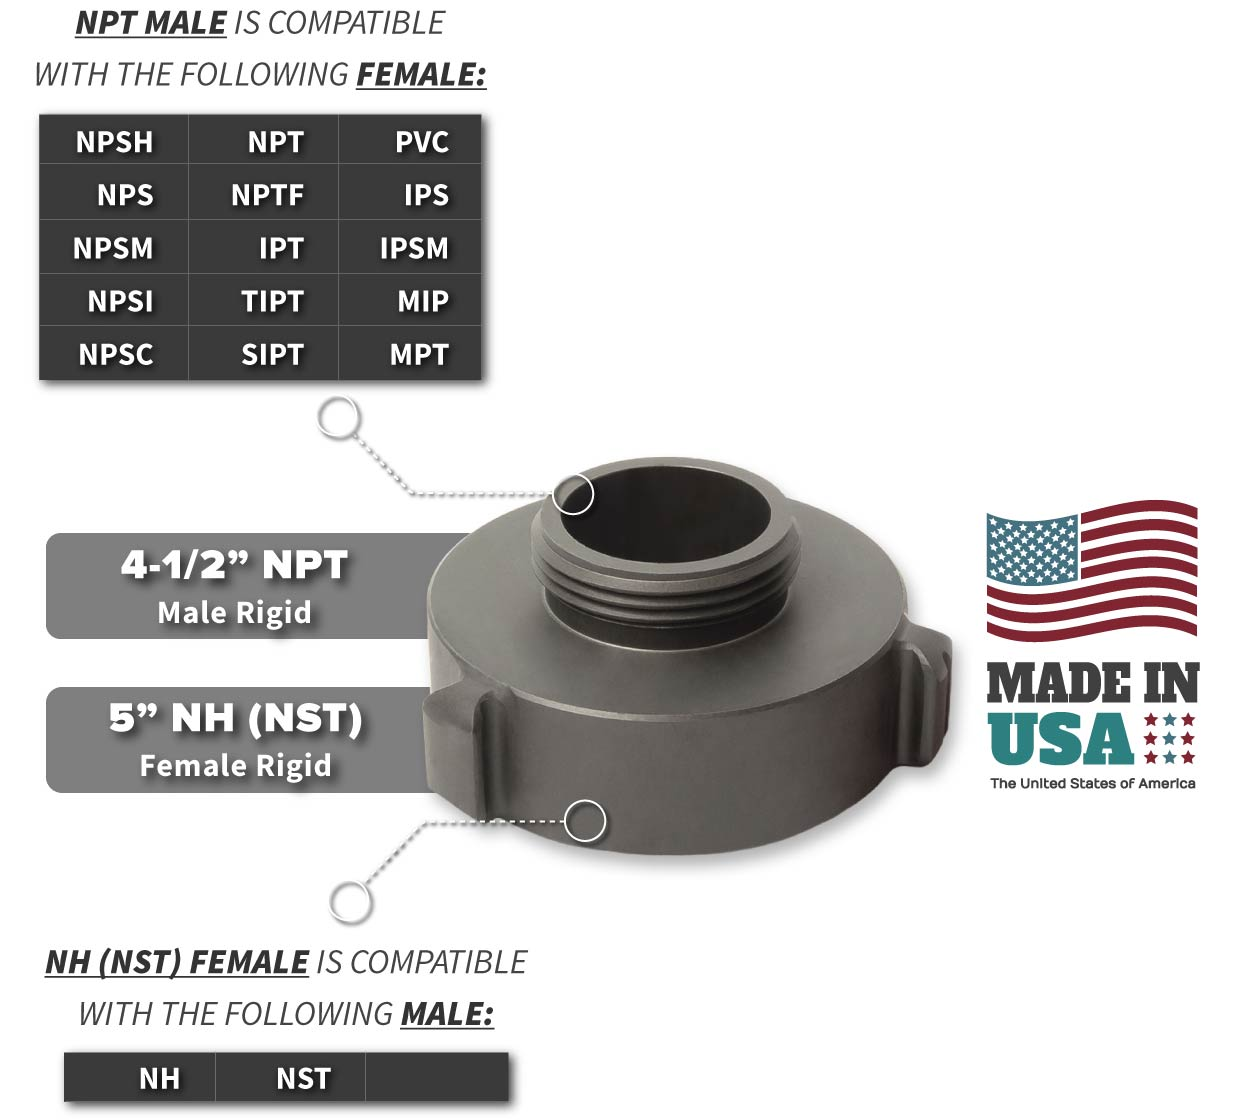 5 Inch NH-NST Female x 4.5 Inch NPT Male Compatibility Thread Chart